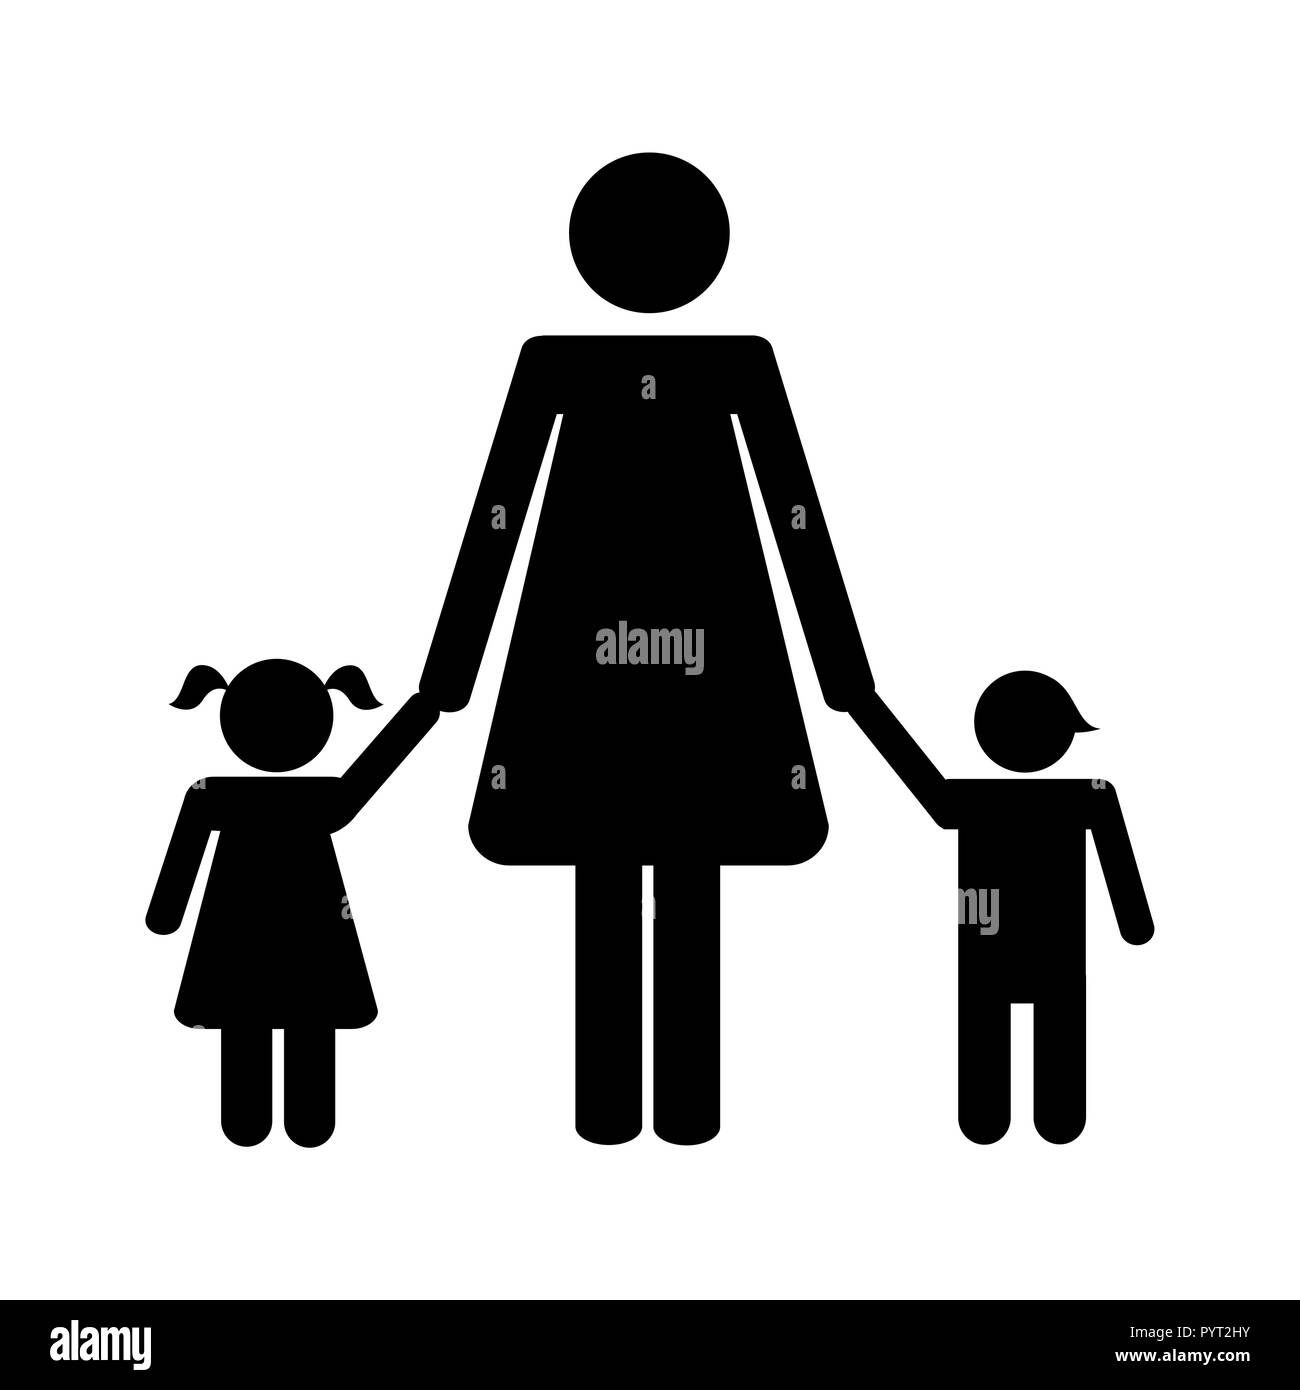 mother with two children pictogram vector illustration EPS10 - Stock Vector